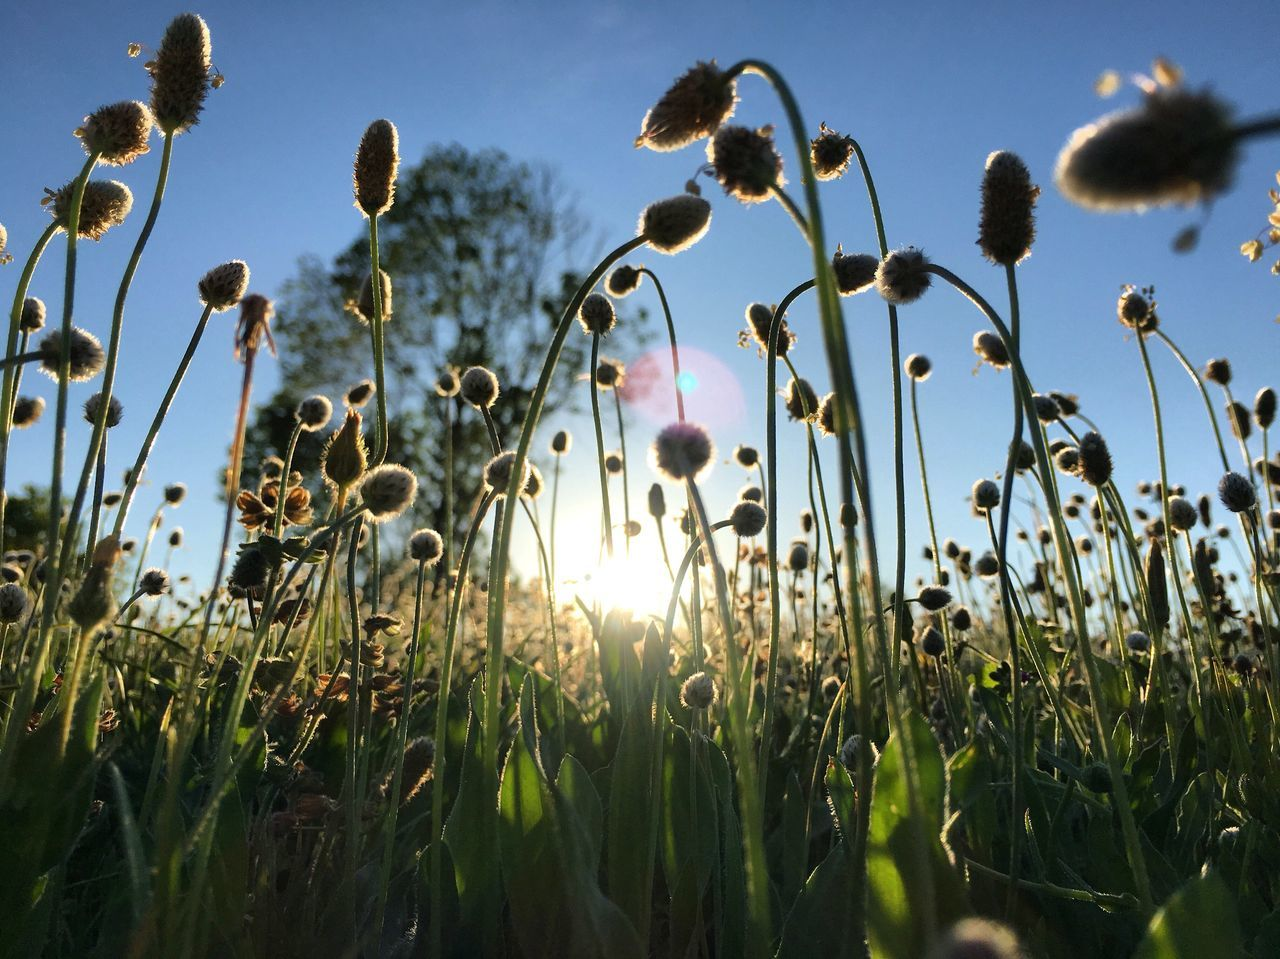 growth, nature, plant, field, no people, beauty in nature, outdoors, day, flower, sunlight, grass, sky, freshness, clear sky, close-up, fragility